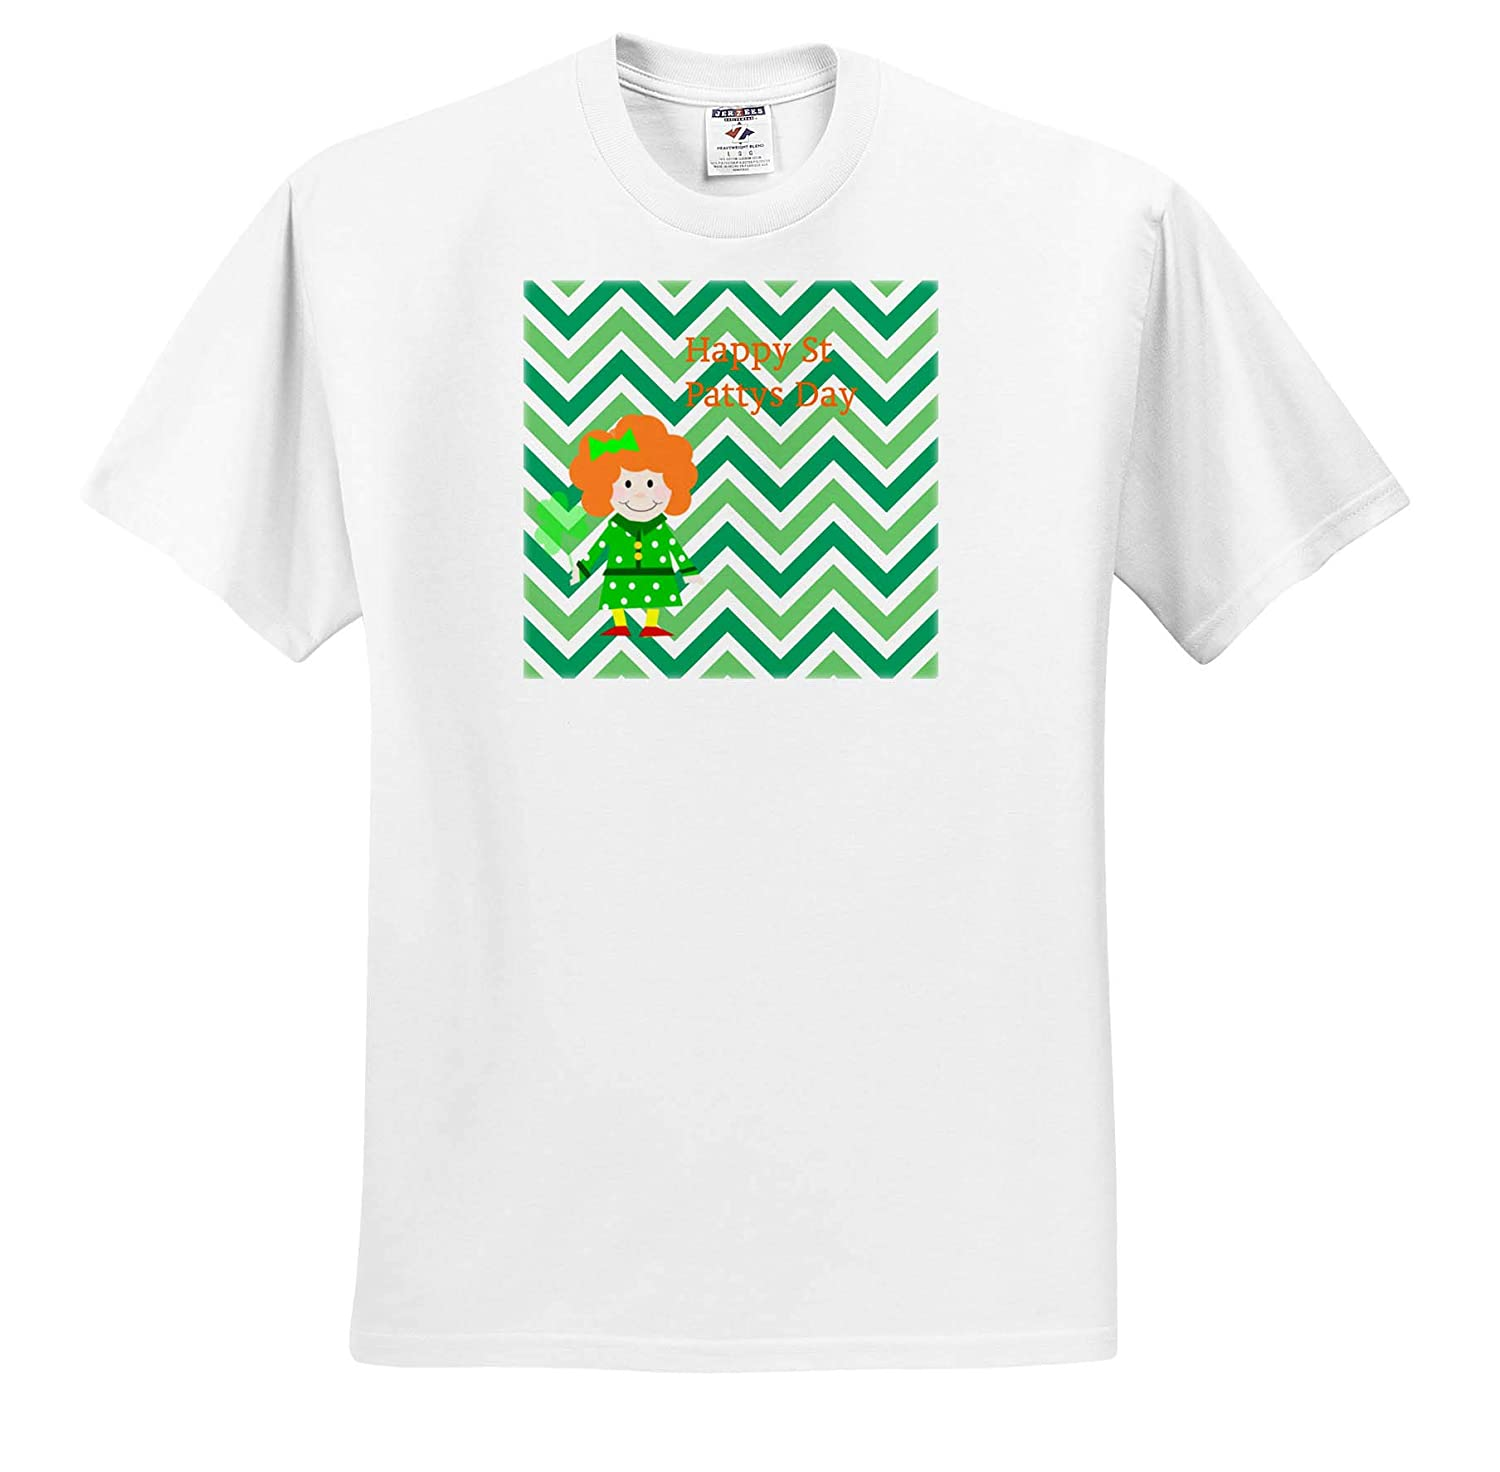 3dRose Lens Art by Florene T-Shirts Image of Happy St Pattys Day Says Wee Girl On Green Chevron St Pattys Day